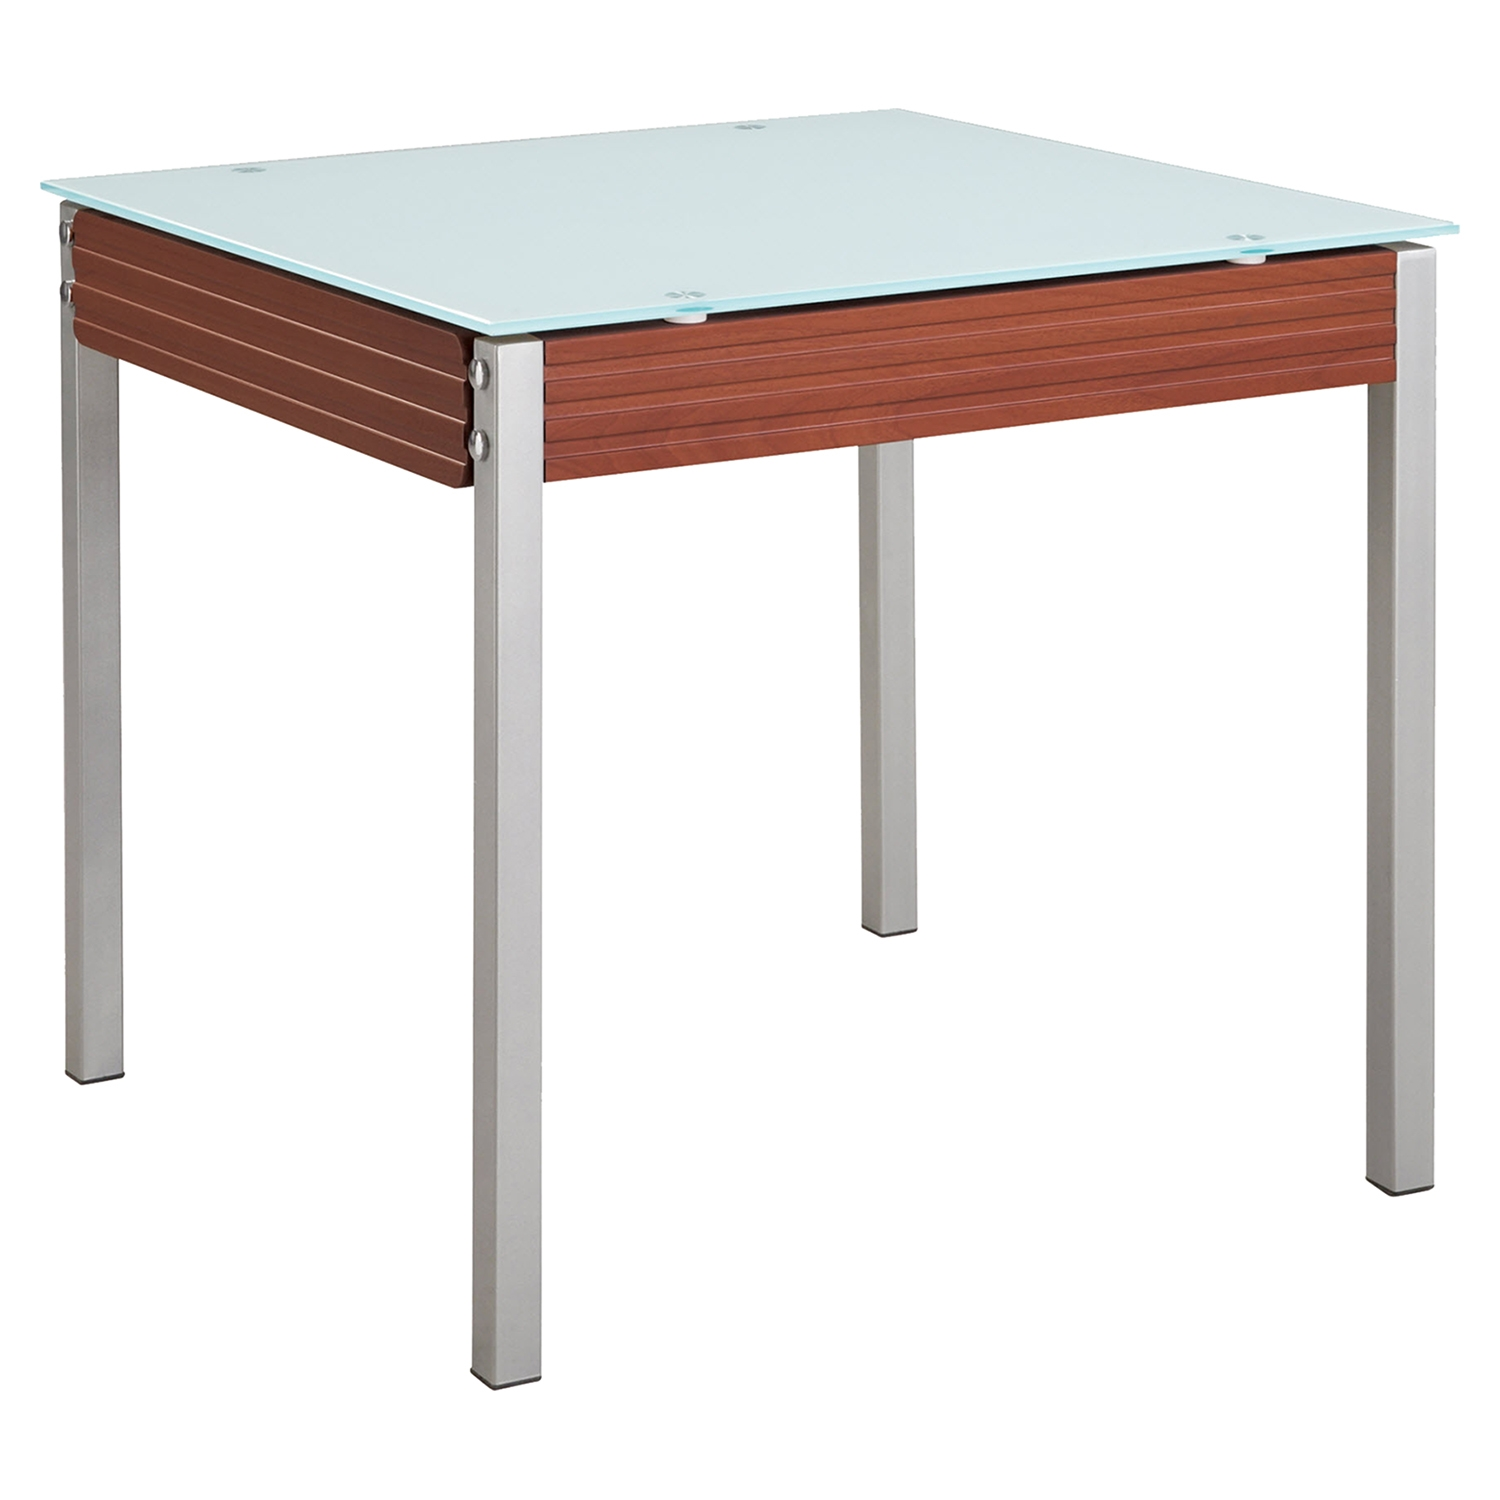 Leonardo Dining Table - Mahogany, Frosted Glass Top, Silver Legs - GLO-D3232DT-M